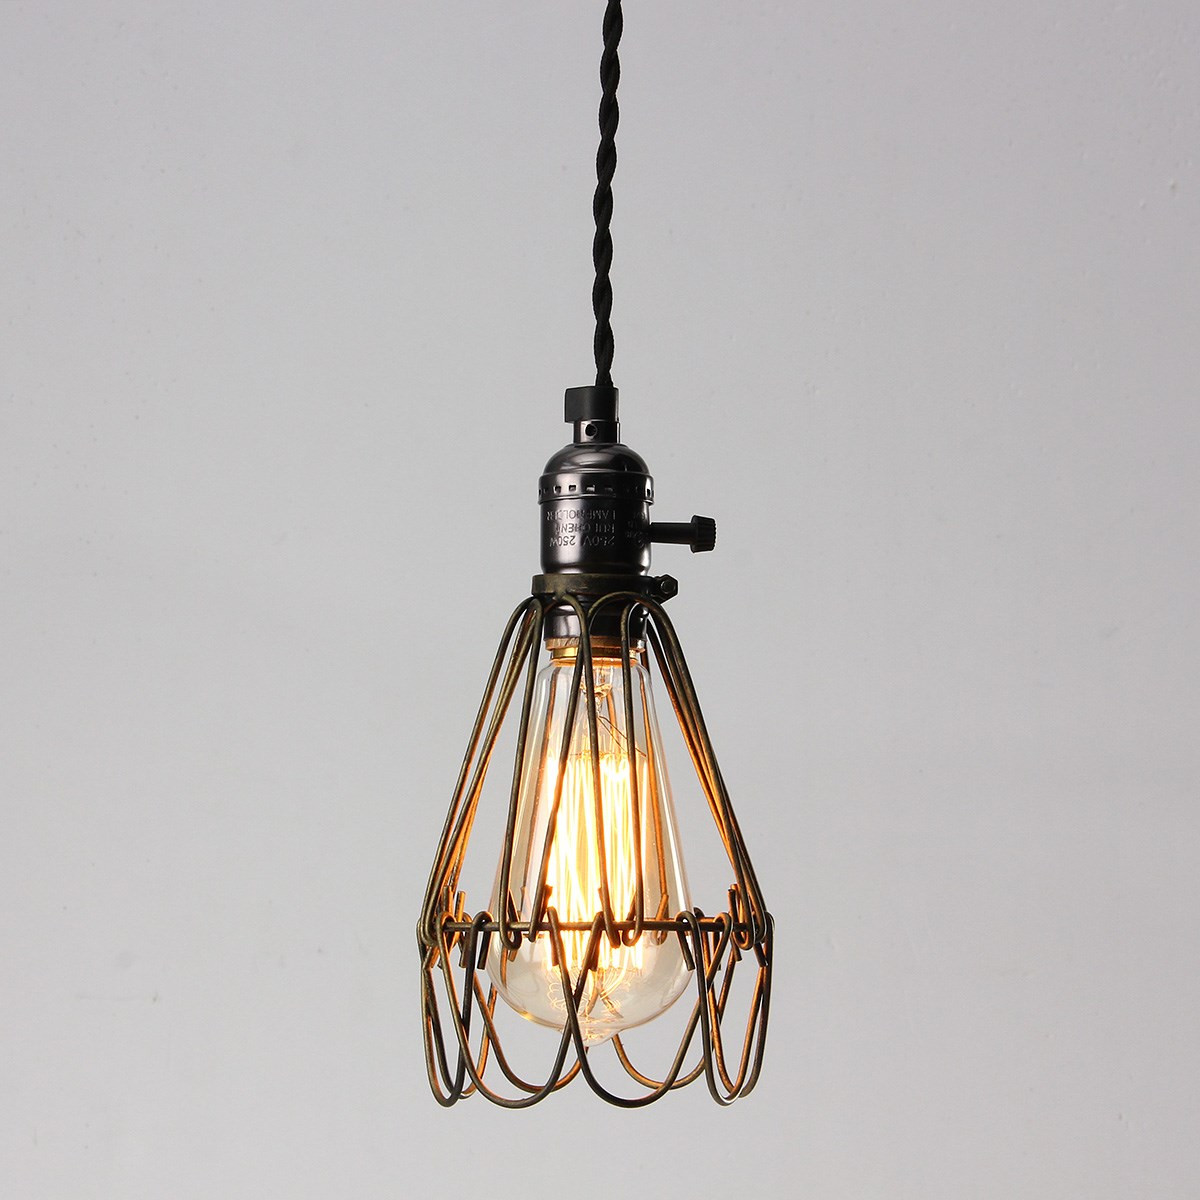 Hot Sale Lamp Cover Retro Vintage Industrial Pendant Light Bulb ...